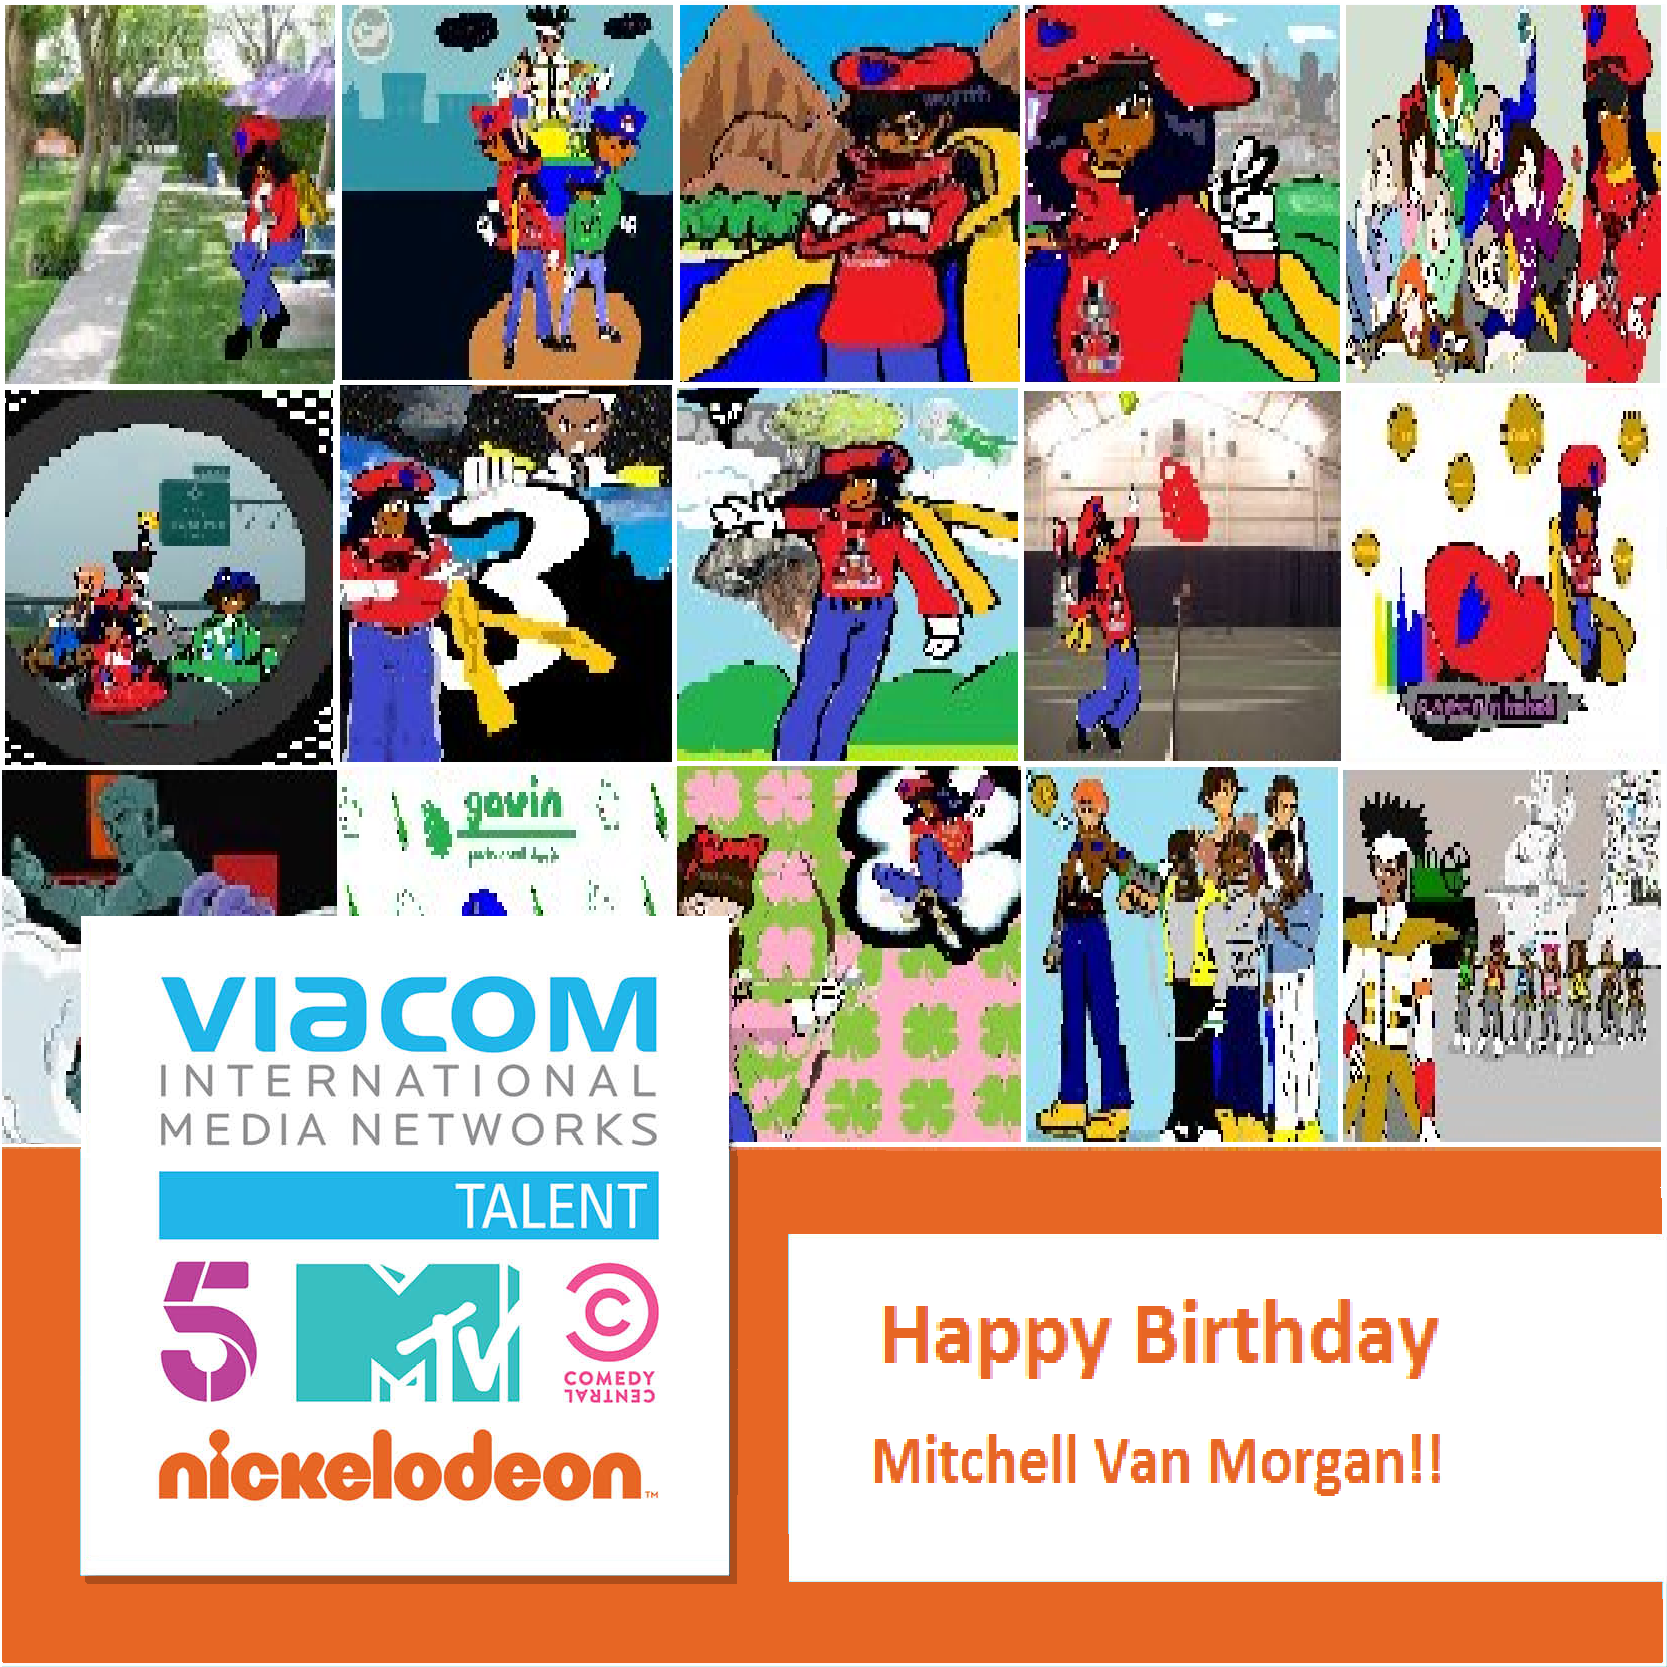 Here S A Very Cool Message For Mitchell Van Morgan On His 20th Anniversary From The Viacom Talent Team Cool Messages 20th Anniversary Happy Birthday